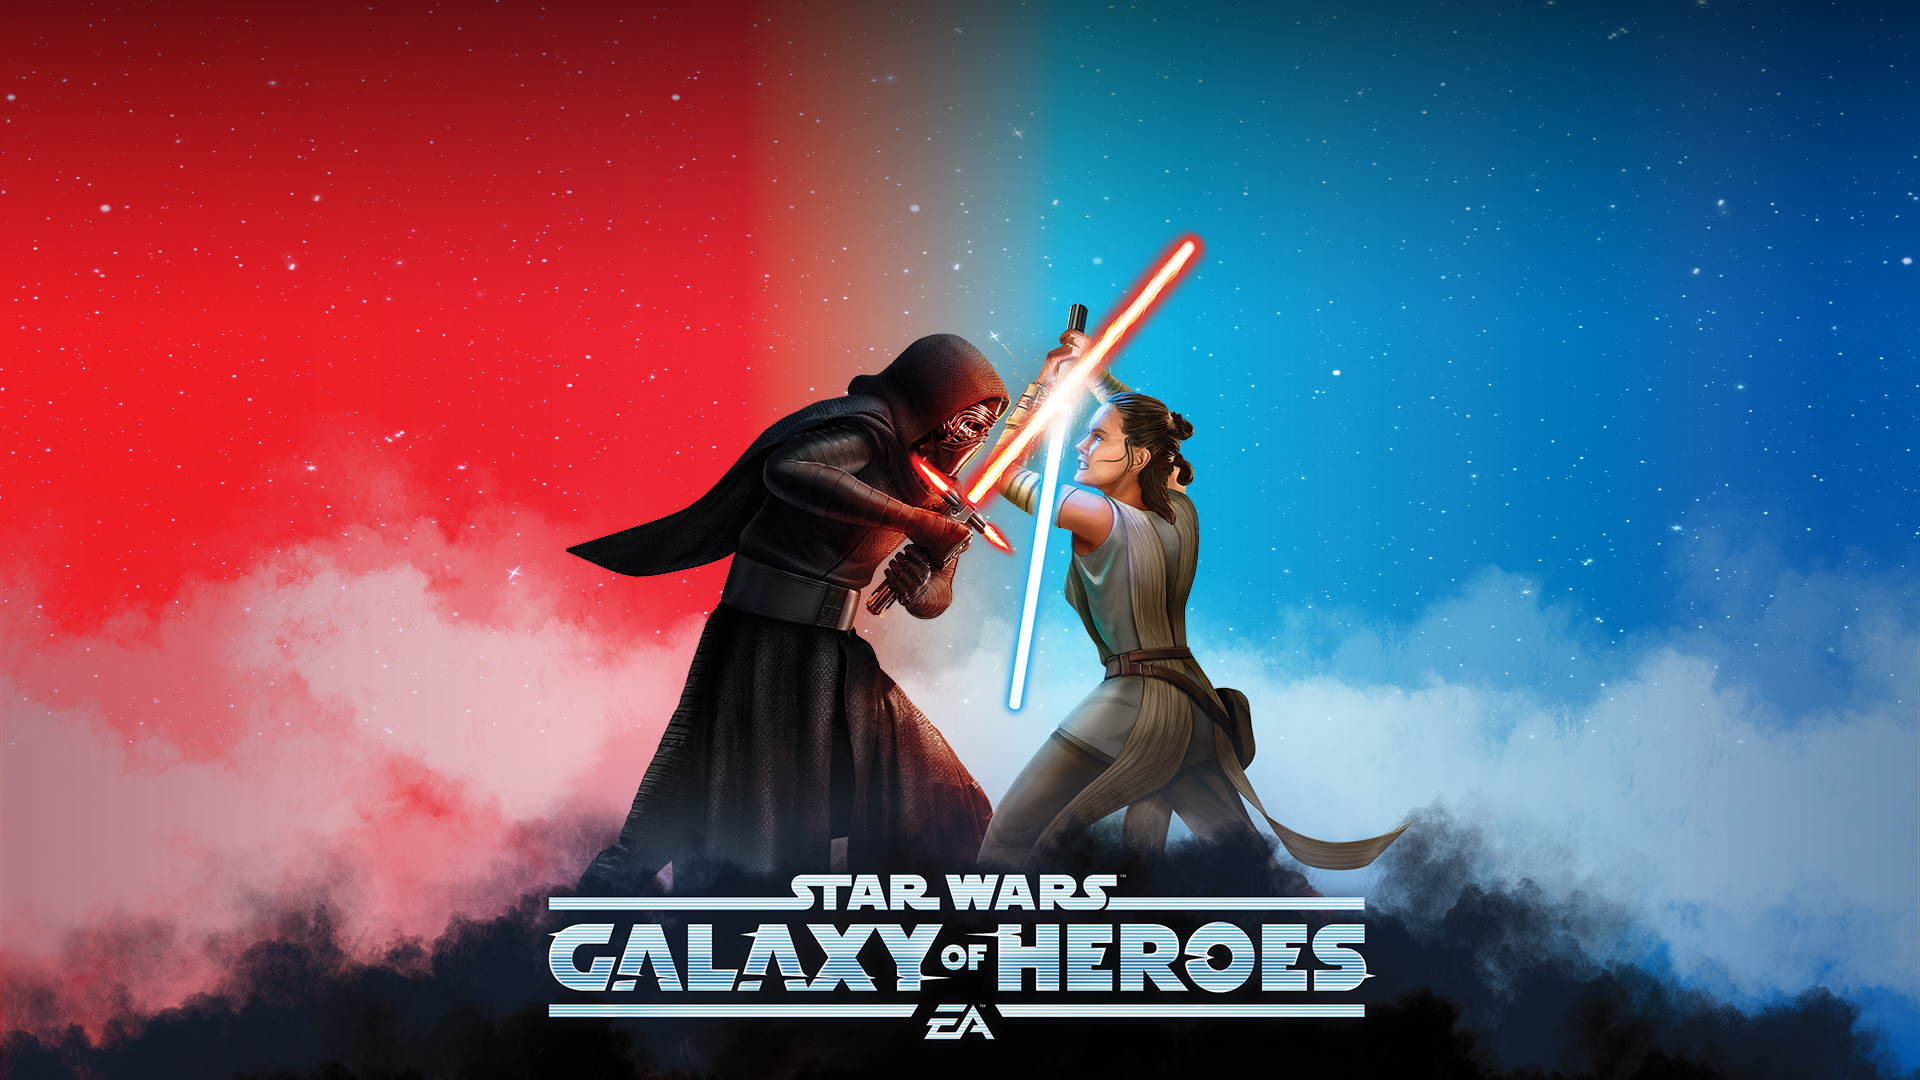 Star Wars Galaxy Of Heroes Hd Games 4k Wallpapers Images Backgrounds Photos And Pictures